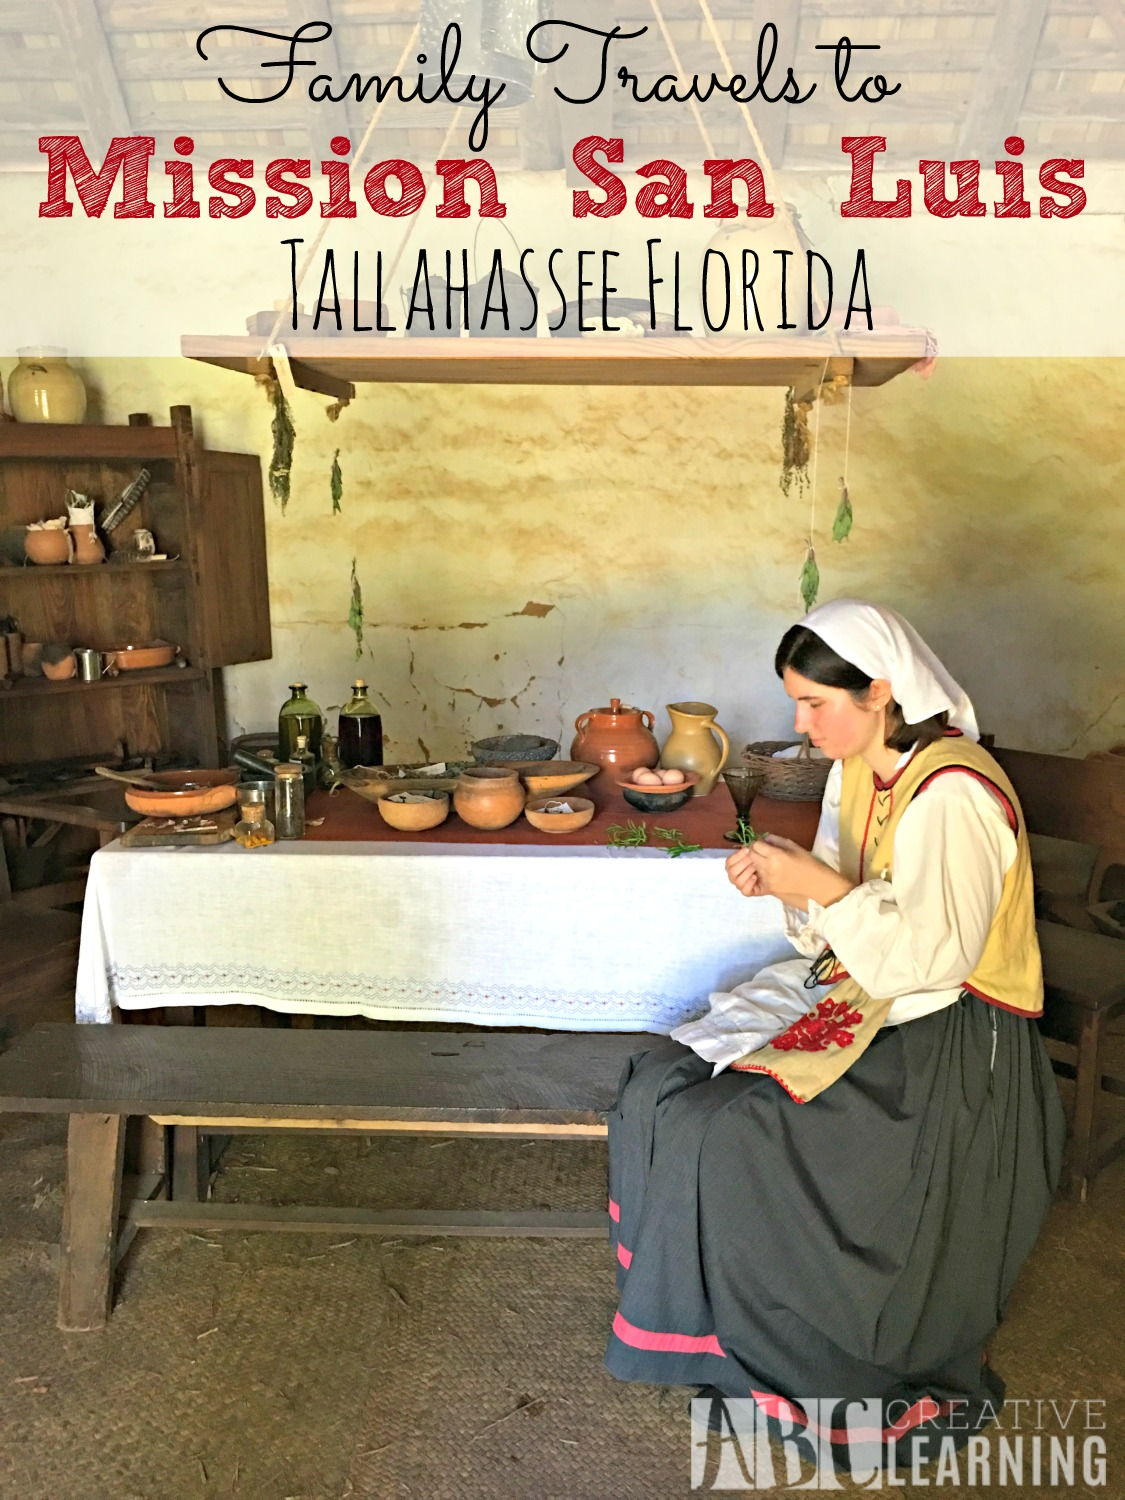 Visiting Mission San Luis in Tallahassee Florida 2